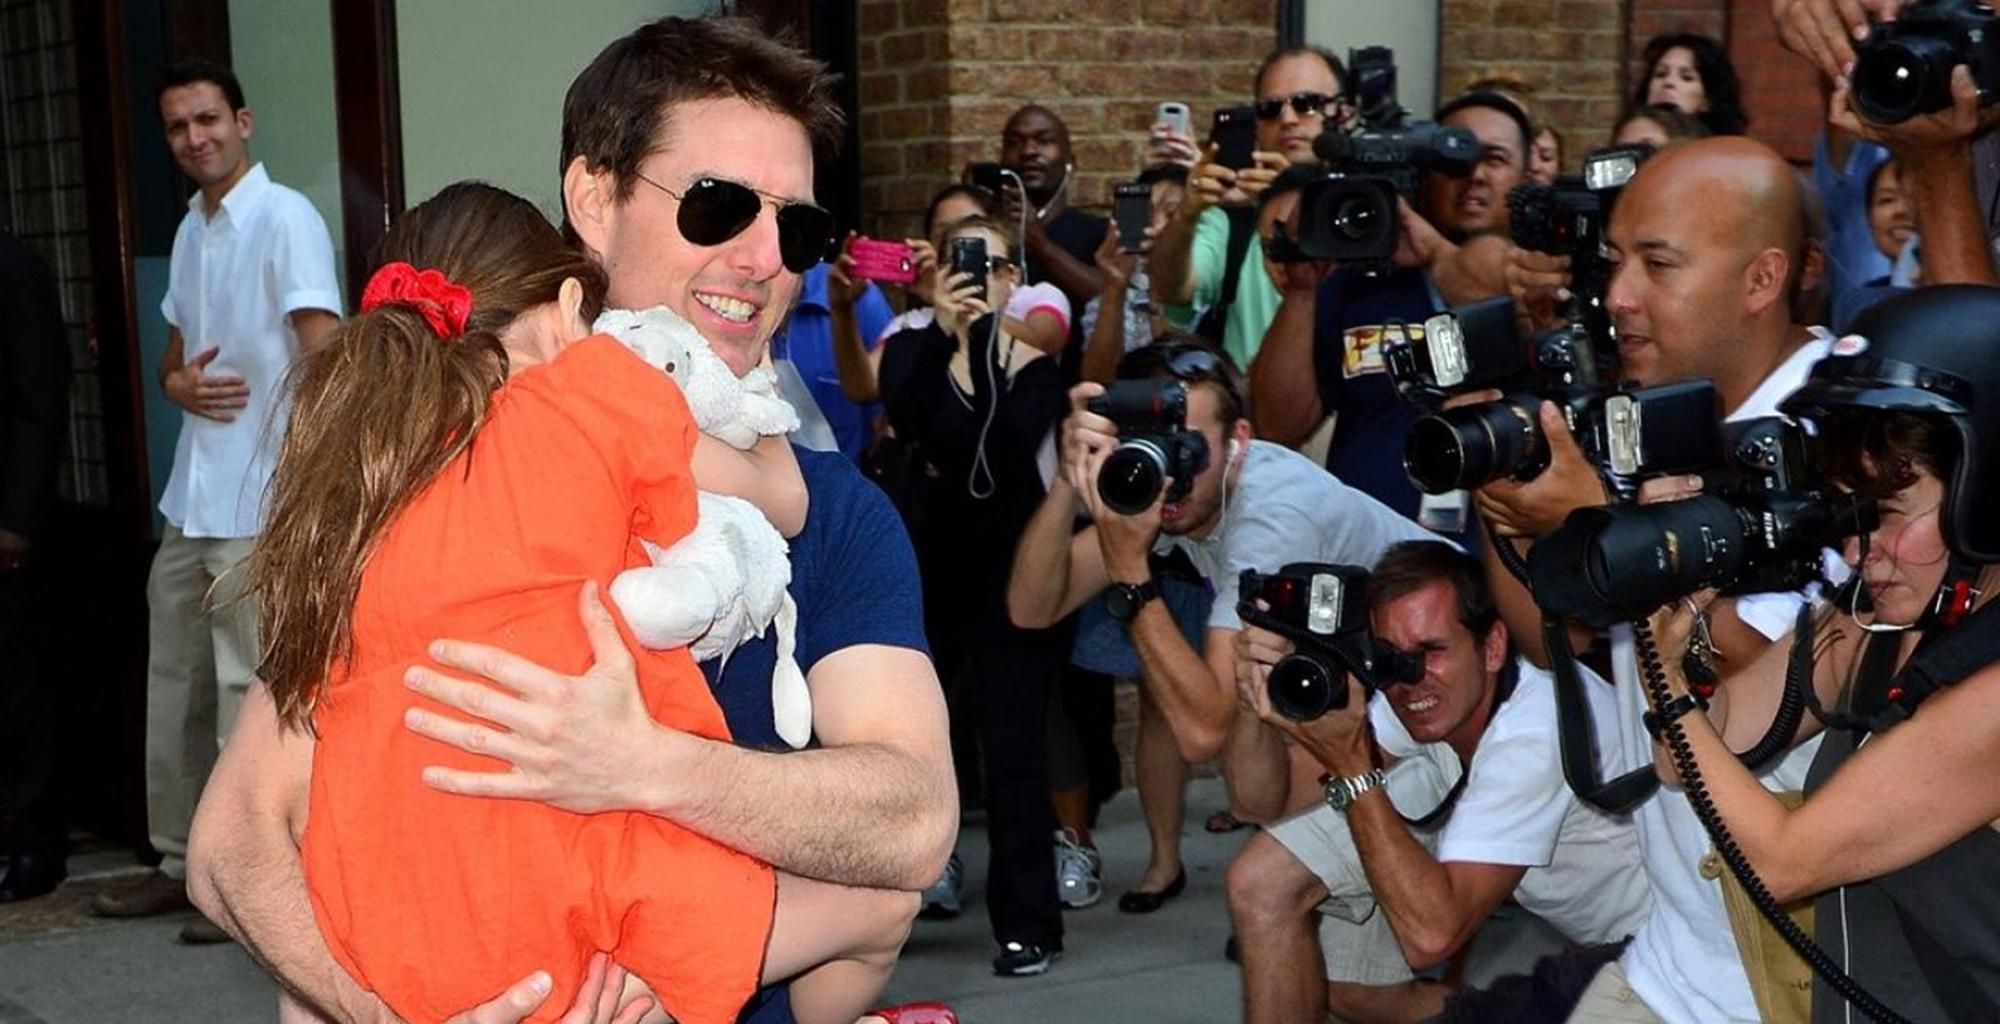 Tom Cruise Reportedly Believes 'Suri's Not Really His Daughter,' According To A Former Scientology Member; Here Is Why He Might Have That Viewpoint